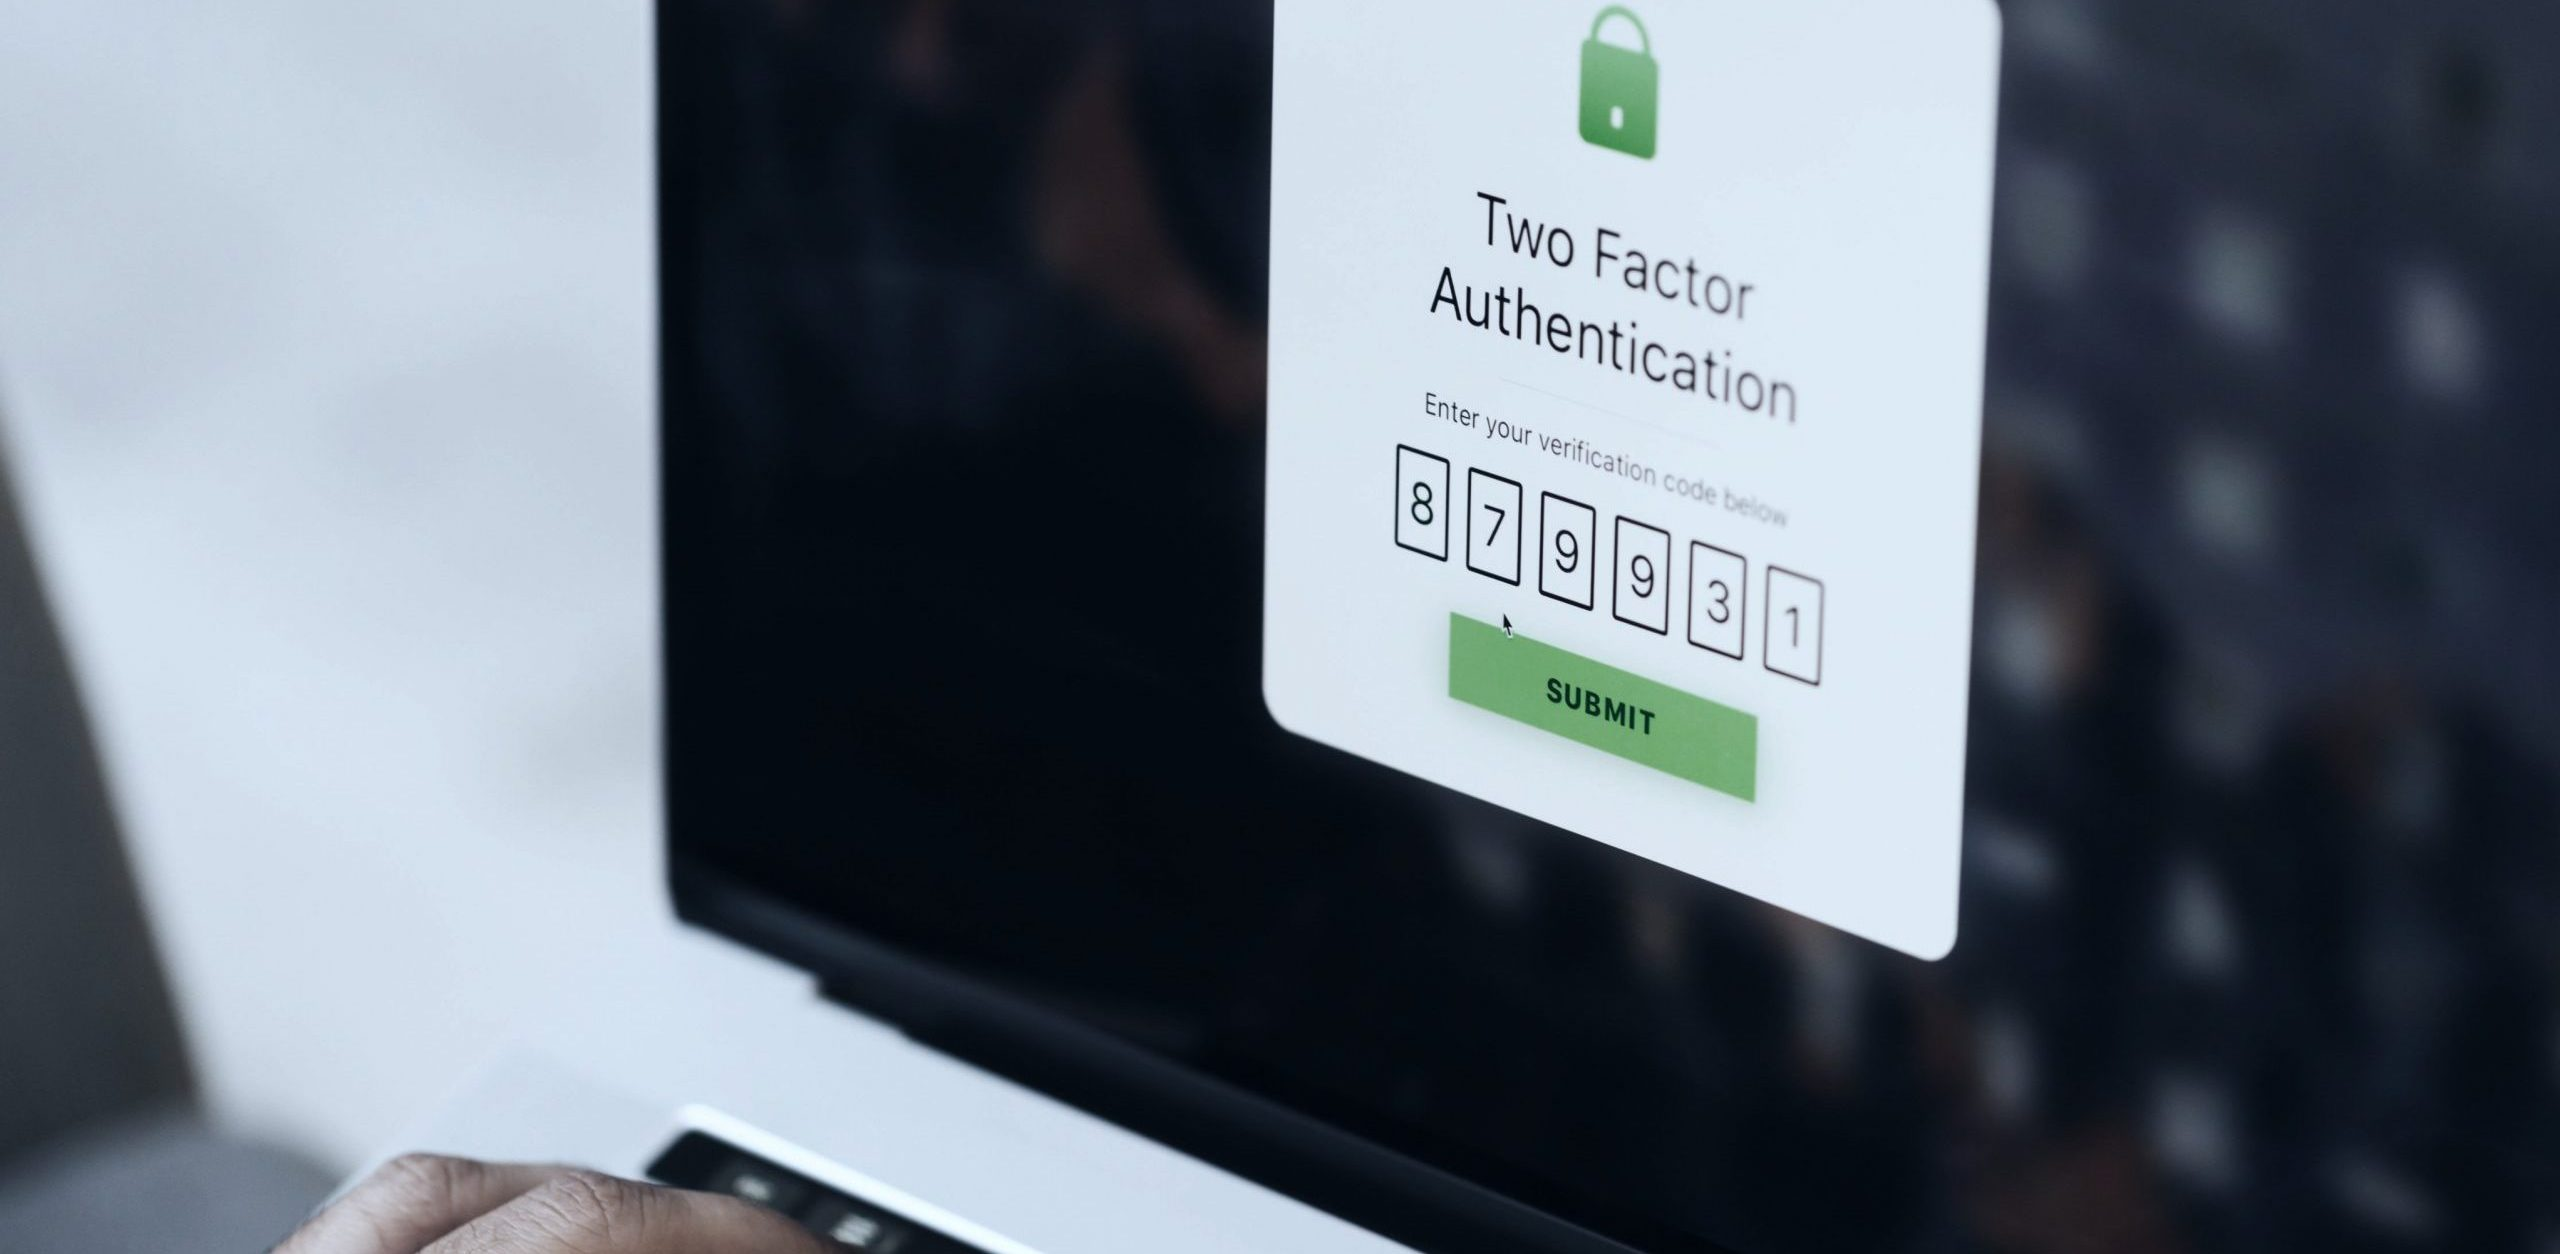 Authentication code on screen